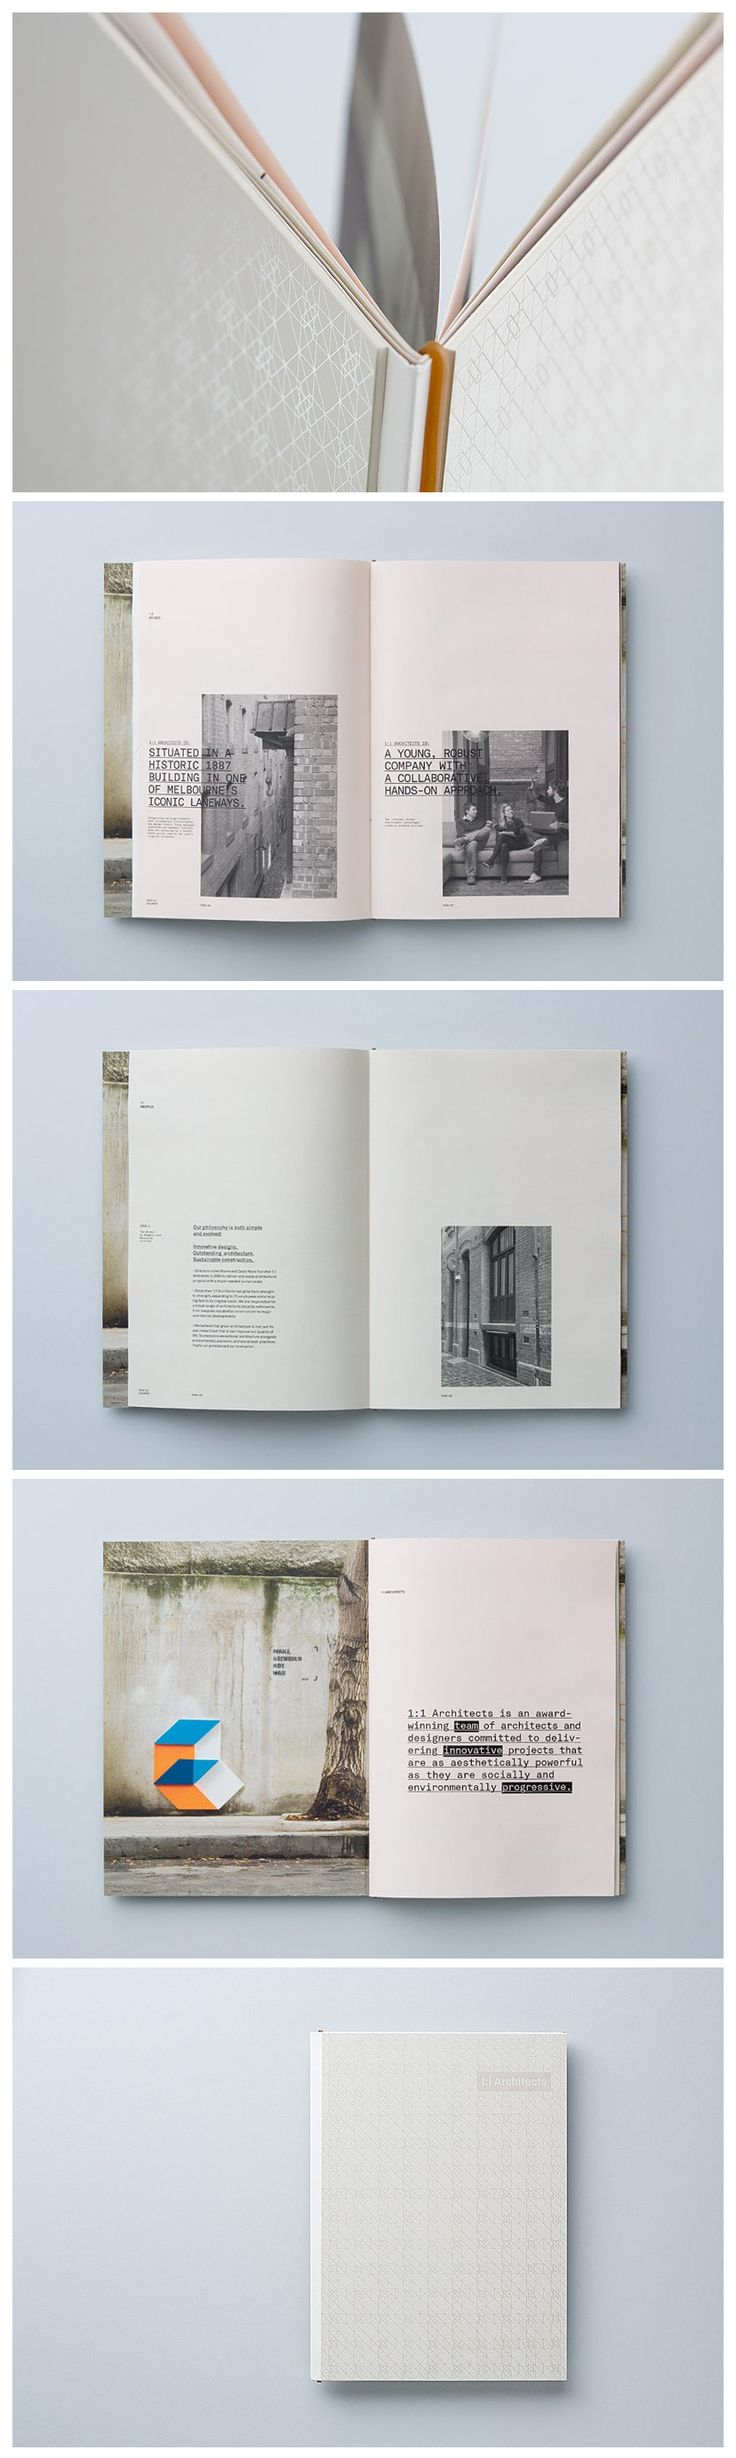 co-oponline 11-architects - Google Search